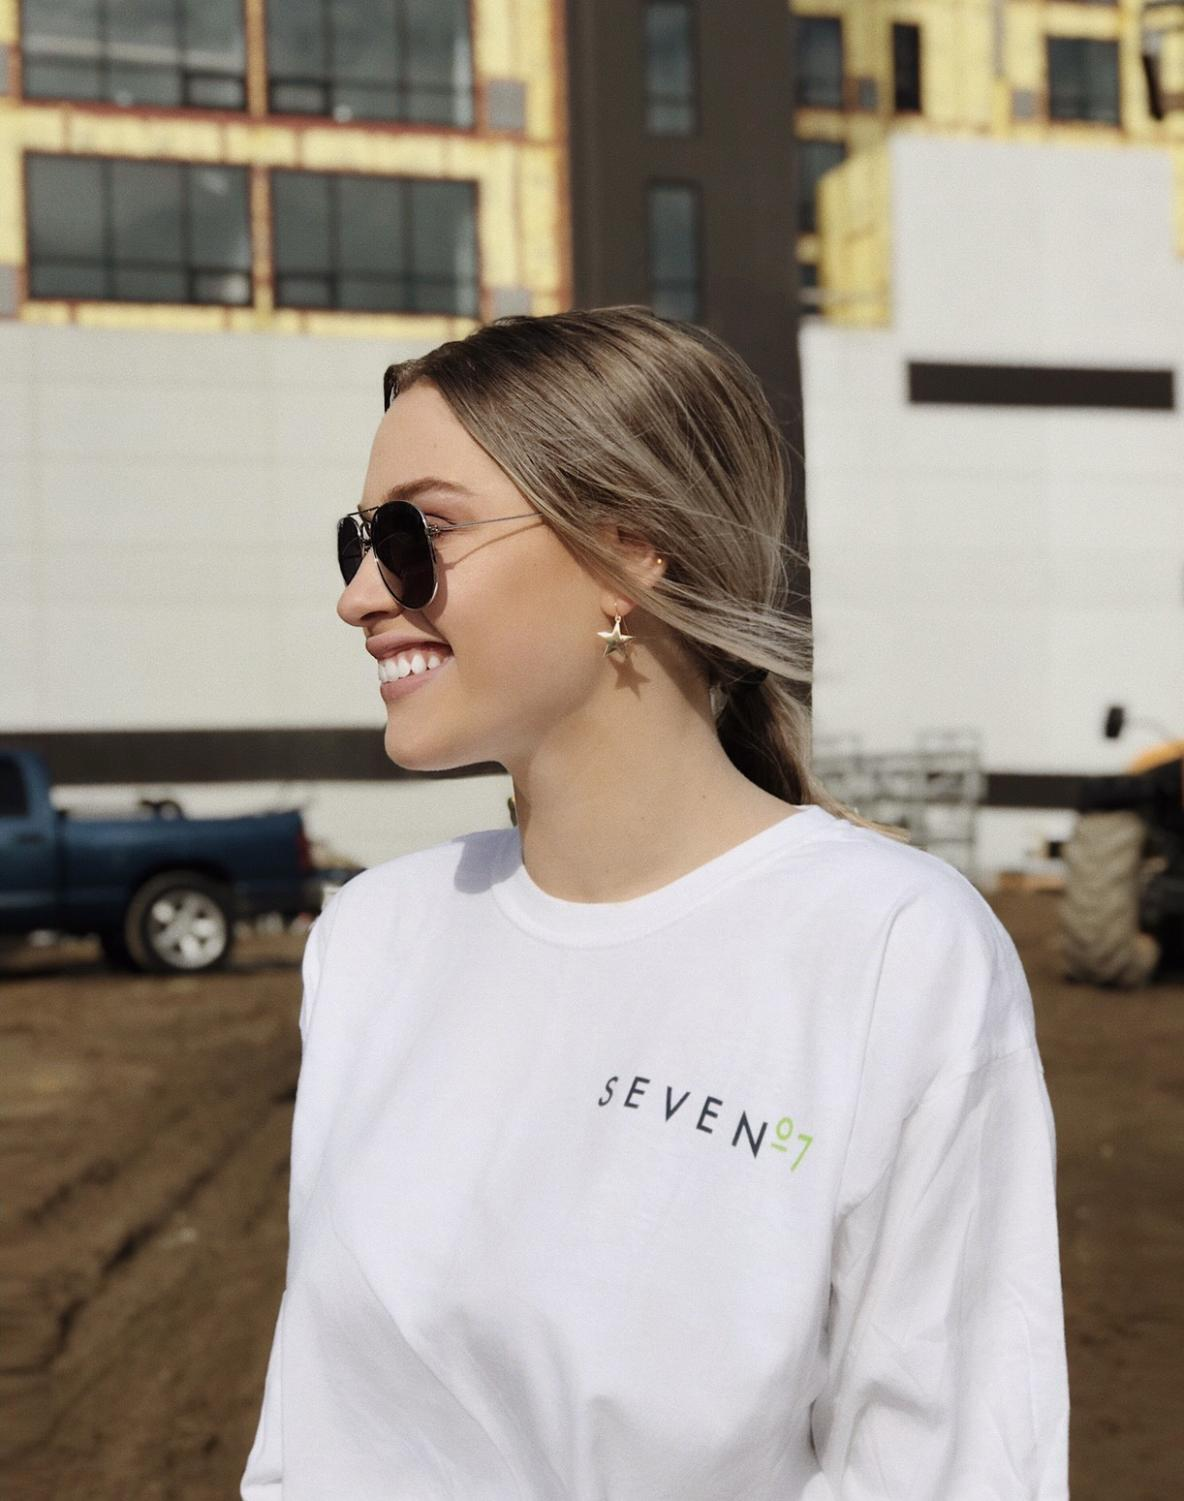 Jessica Gosswein during the Seven 07 Campaign at Seven 07's leasing office.